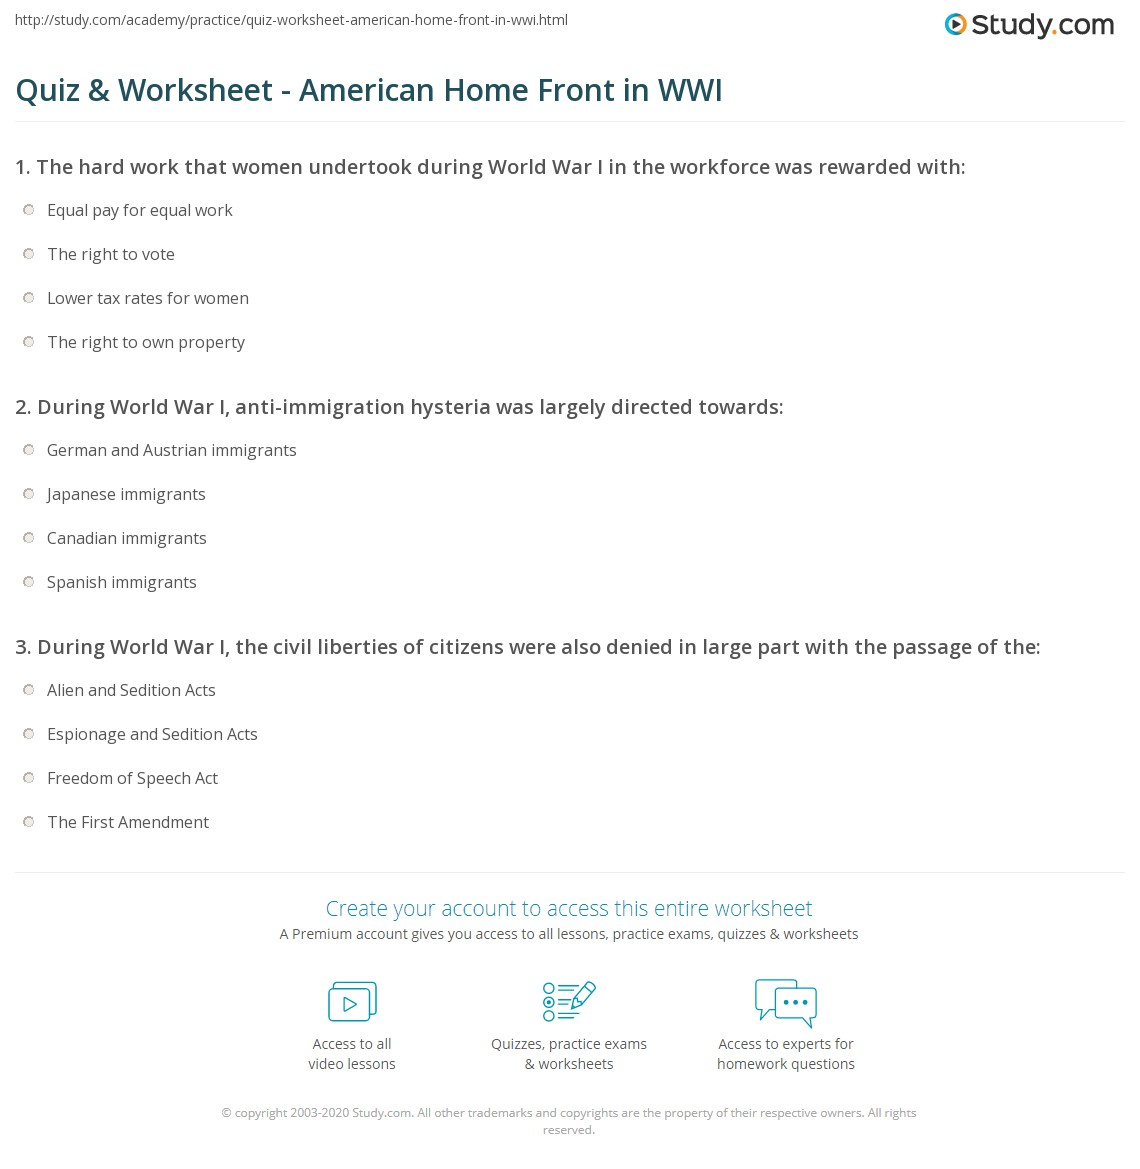 Worksheets Home 2015: Quiz & Worksheet   American Home Front in WWI   Study com,